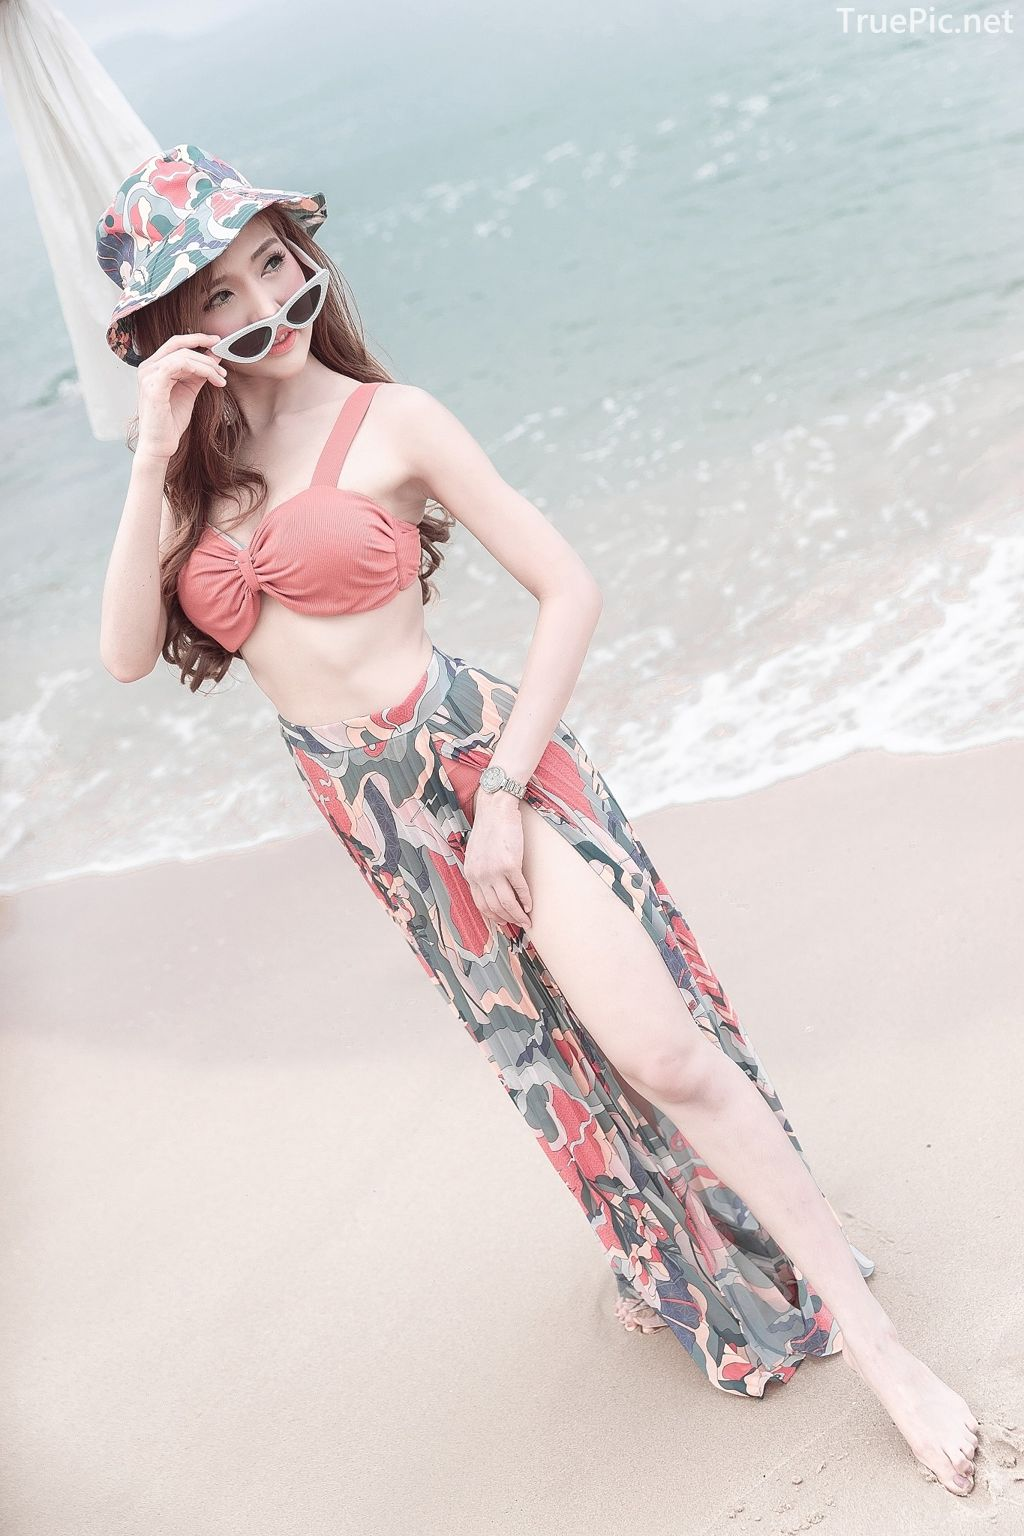 Thailand model - I'nam Arissara Chaidech - Pink Bikini on the beach - TruePic.net - Picture 8